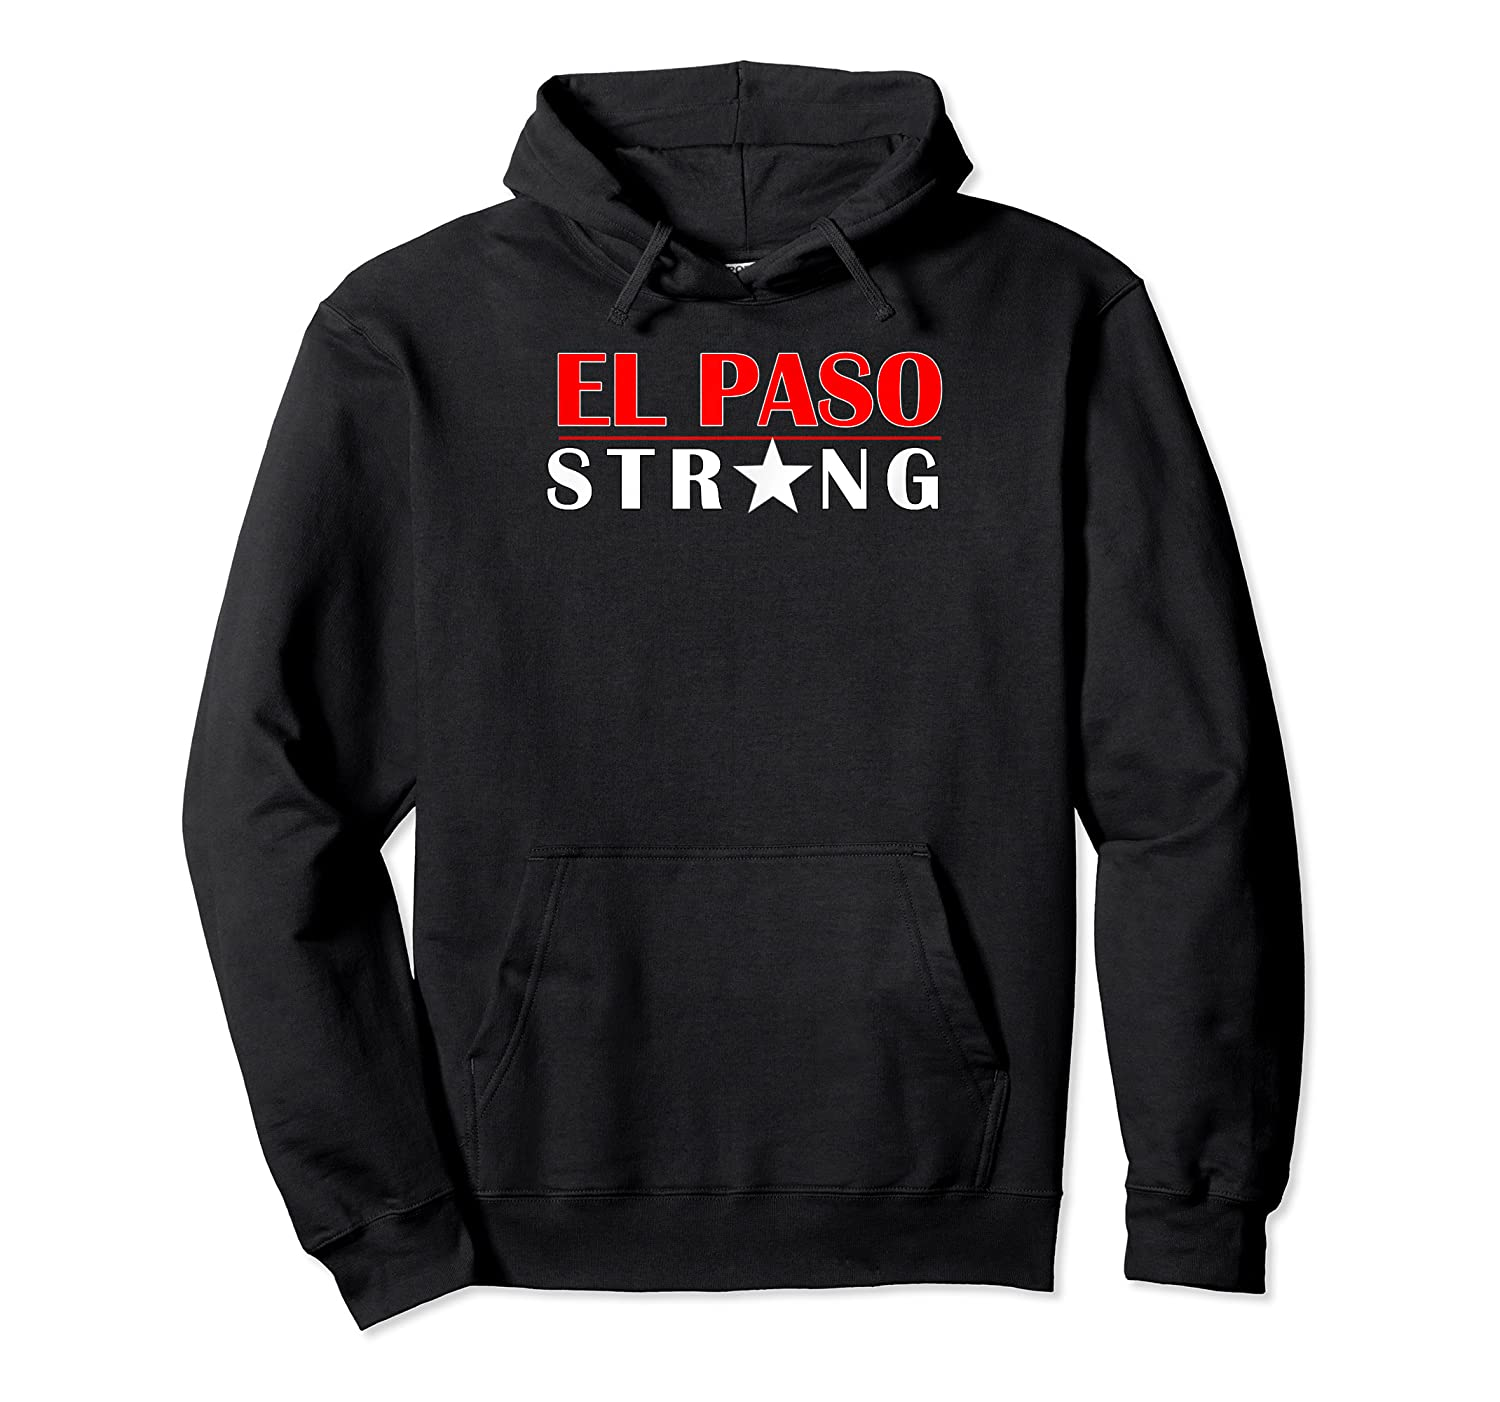 For Support And Shirts Unisex Pullover Hoodie